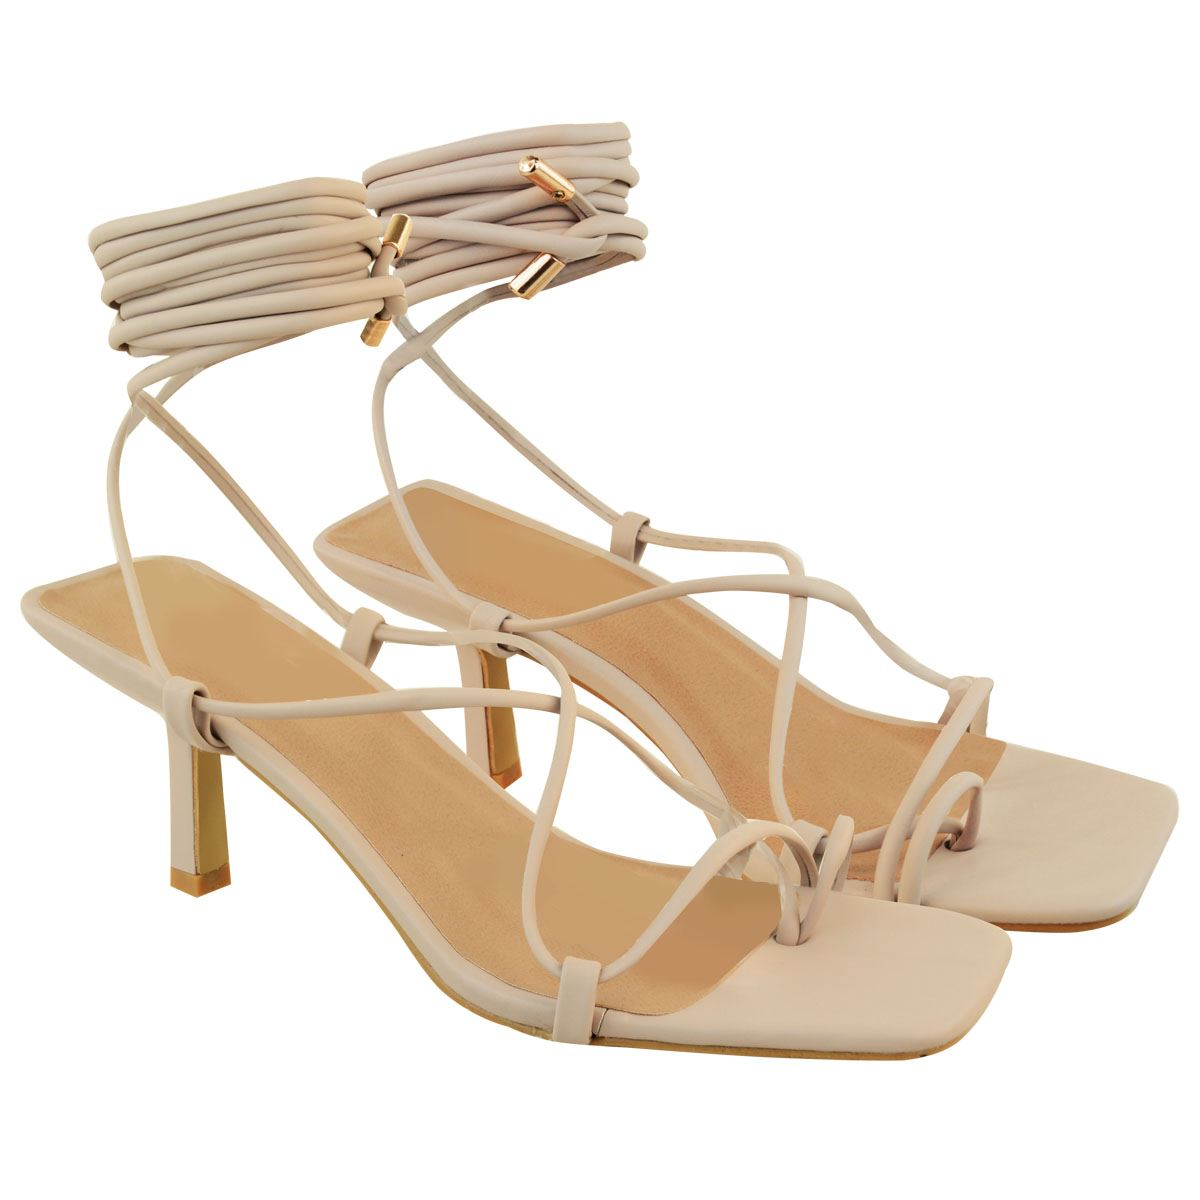 Ladies Womens Strappy Tie Up Sandals Lace Low Heels Toe Loop Summer Party Shoes